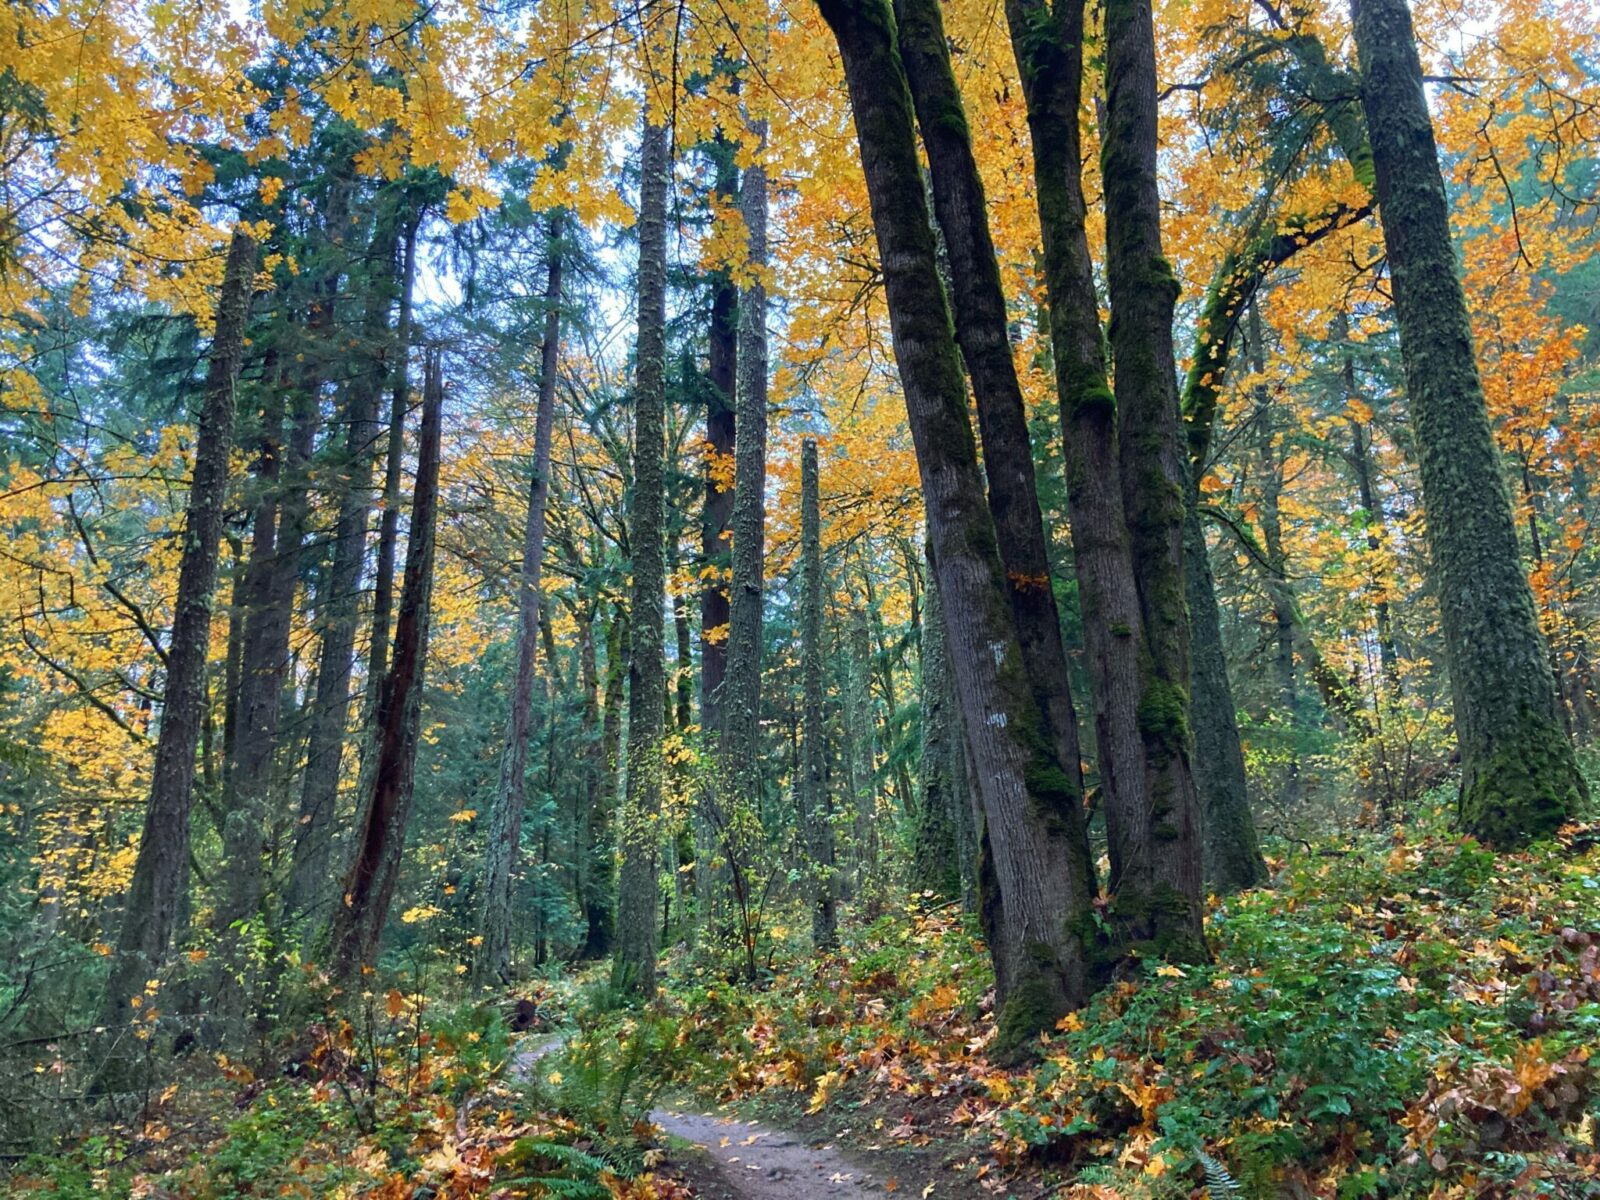 One of the best hikes in Issaquah, Grand Ridge is a trail through the forest of evergreen and maple trees that are golden yellow in October. Leaves are on the trees and also covering the trail